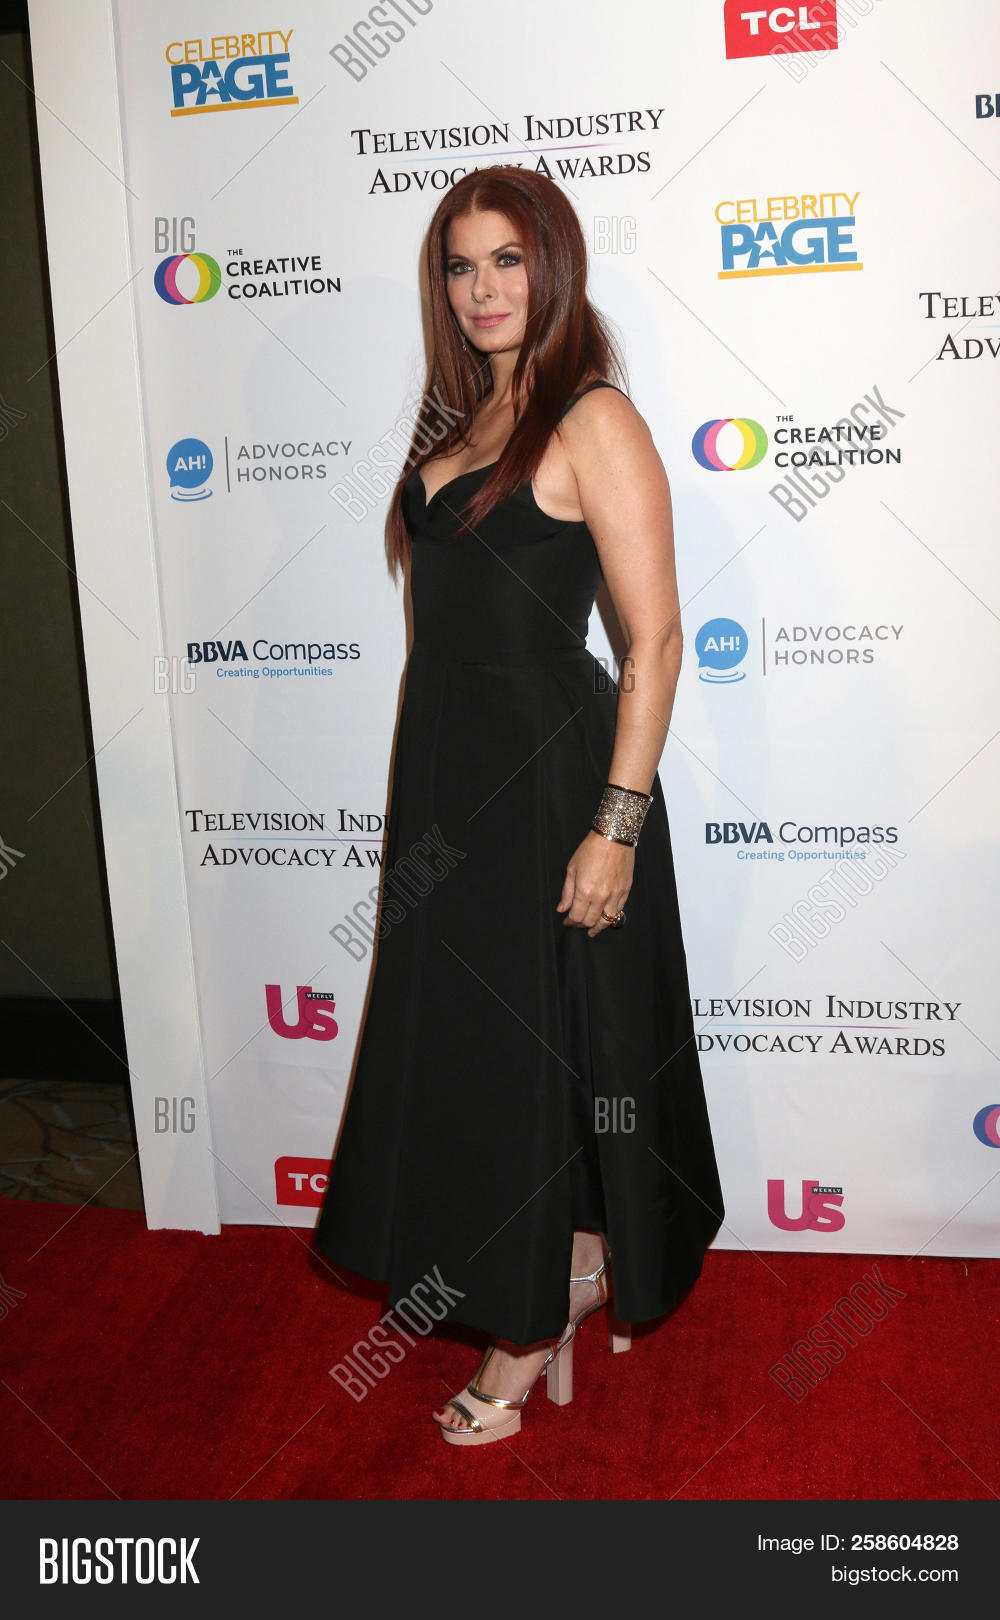 2c9bb43e2ff LOS ANGELES - SEP 15: Debra Messing at the 2018 Television Industry  Advocacy Awards at